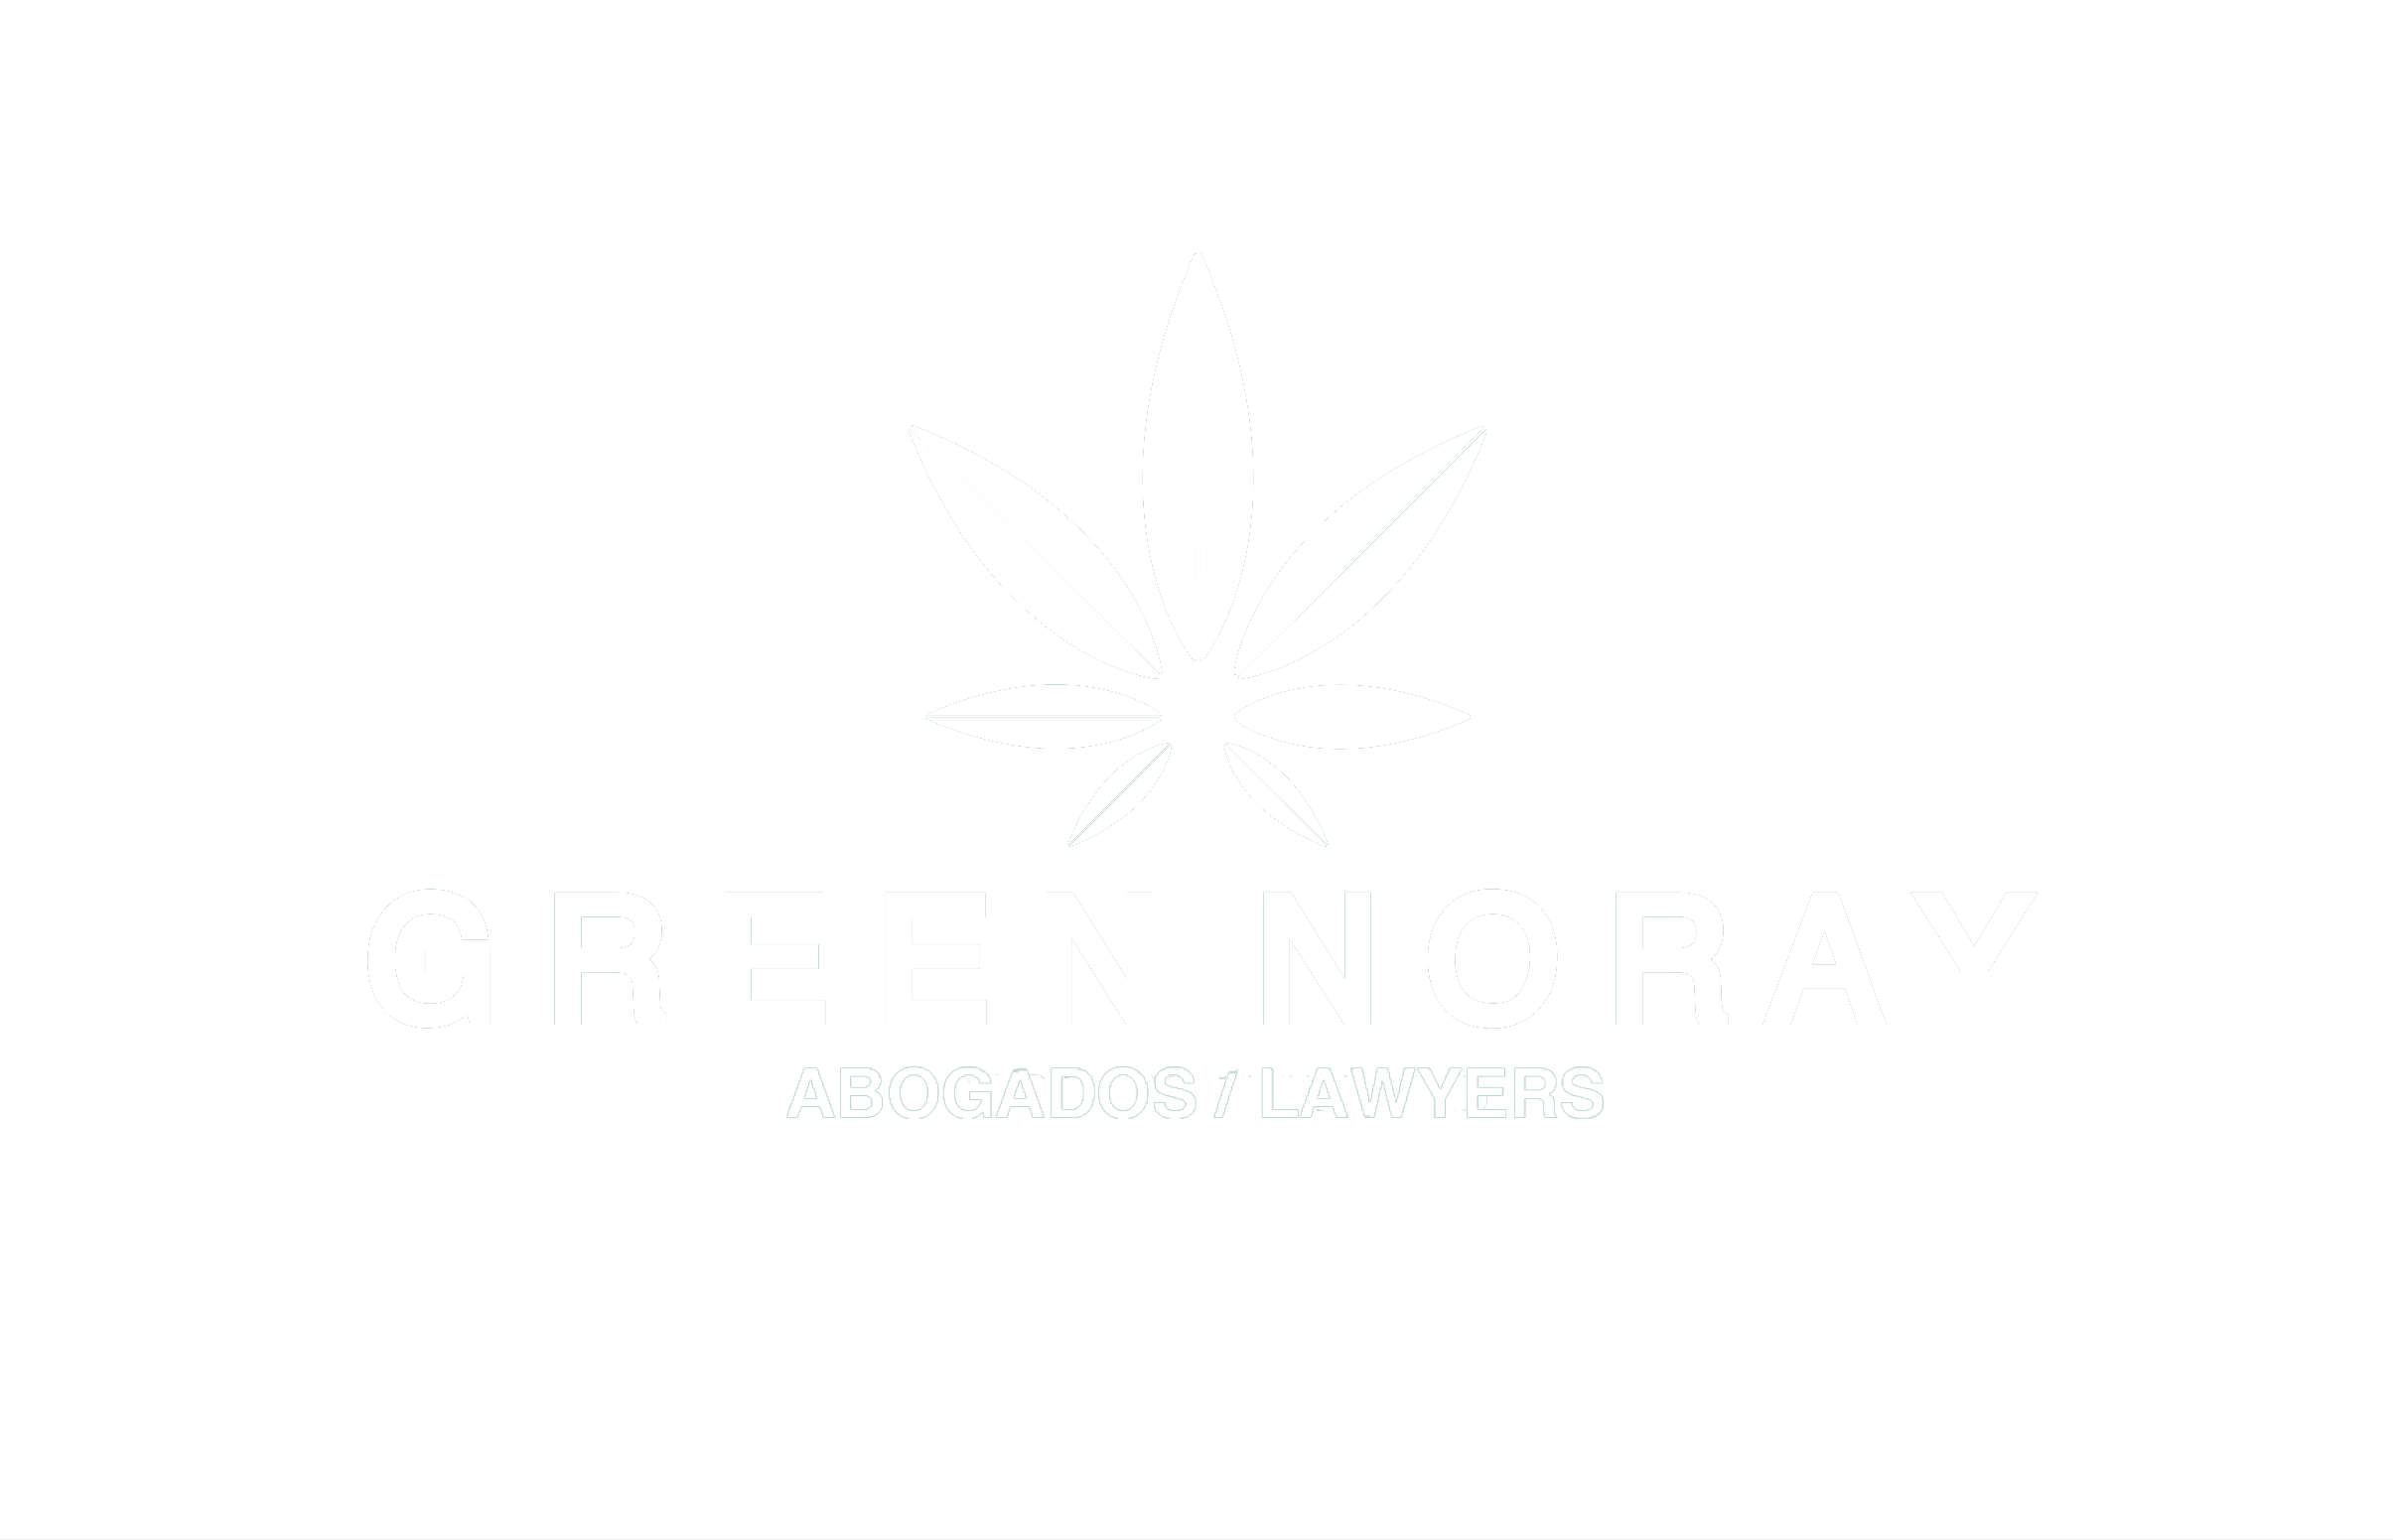 Greennoray-marca-agua